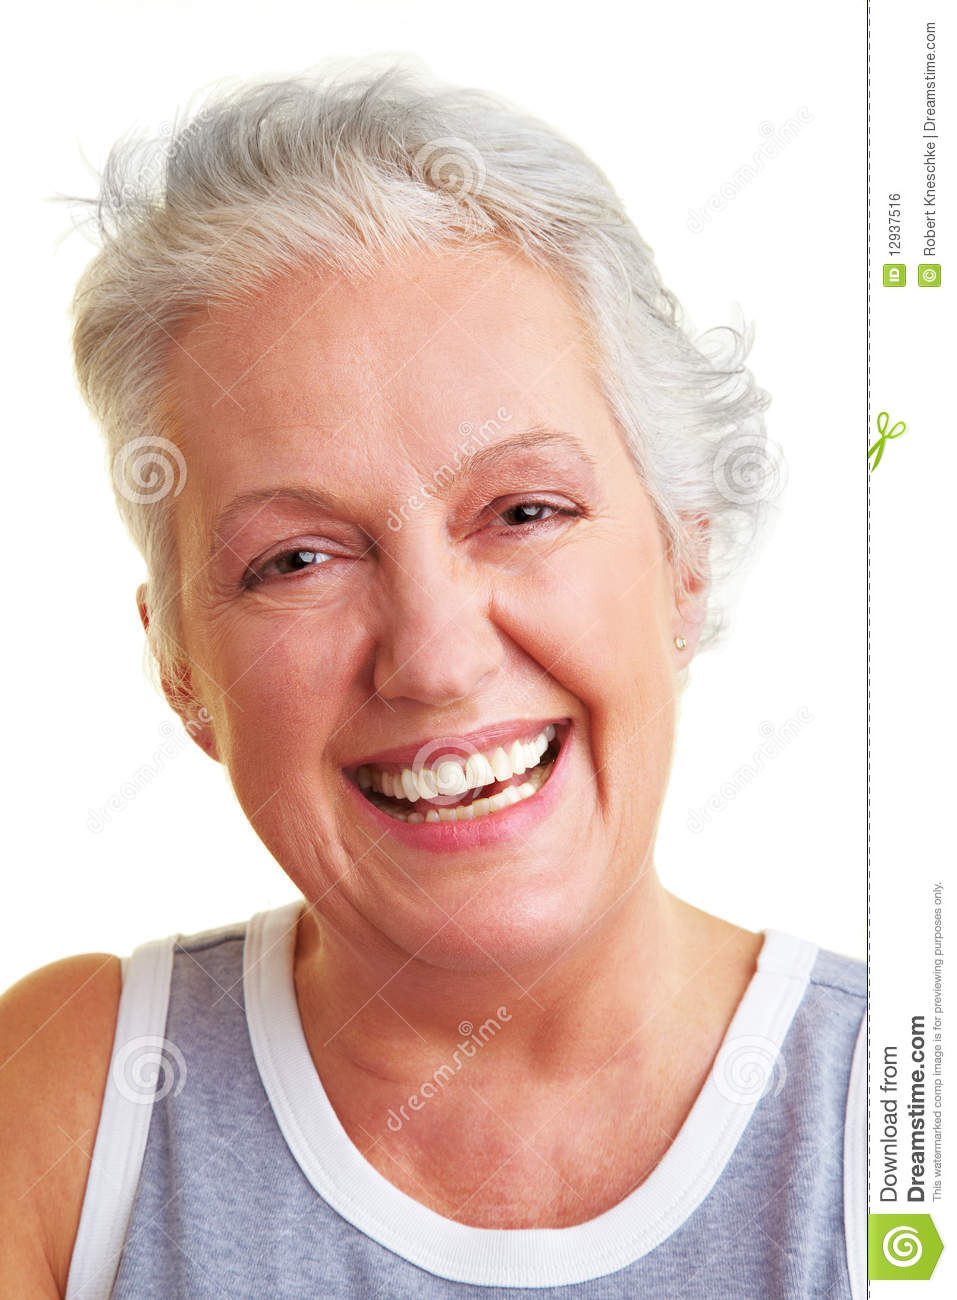 Royalty Free Stock Image Smiling Elderly Woman Image12937516 on Missing Numbers Clipart